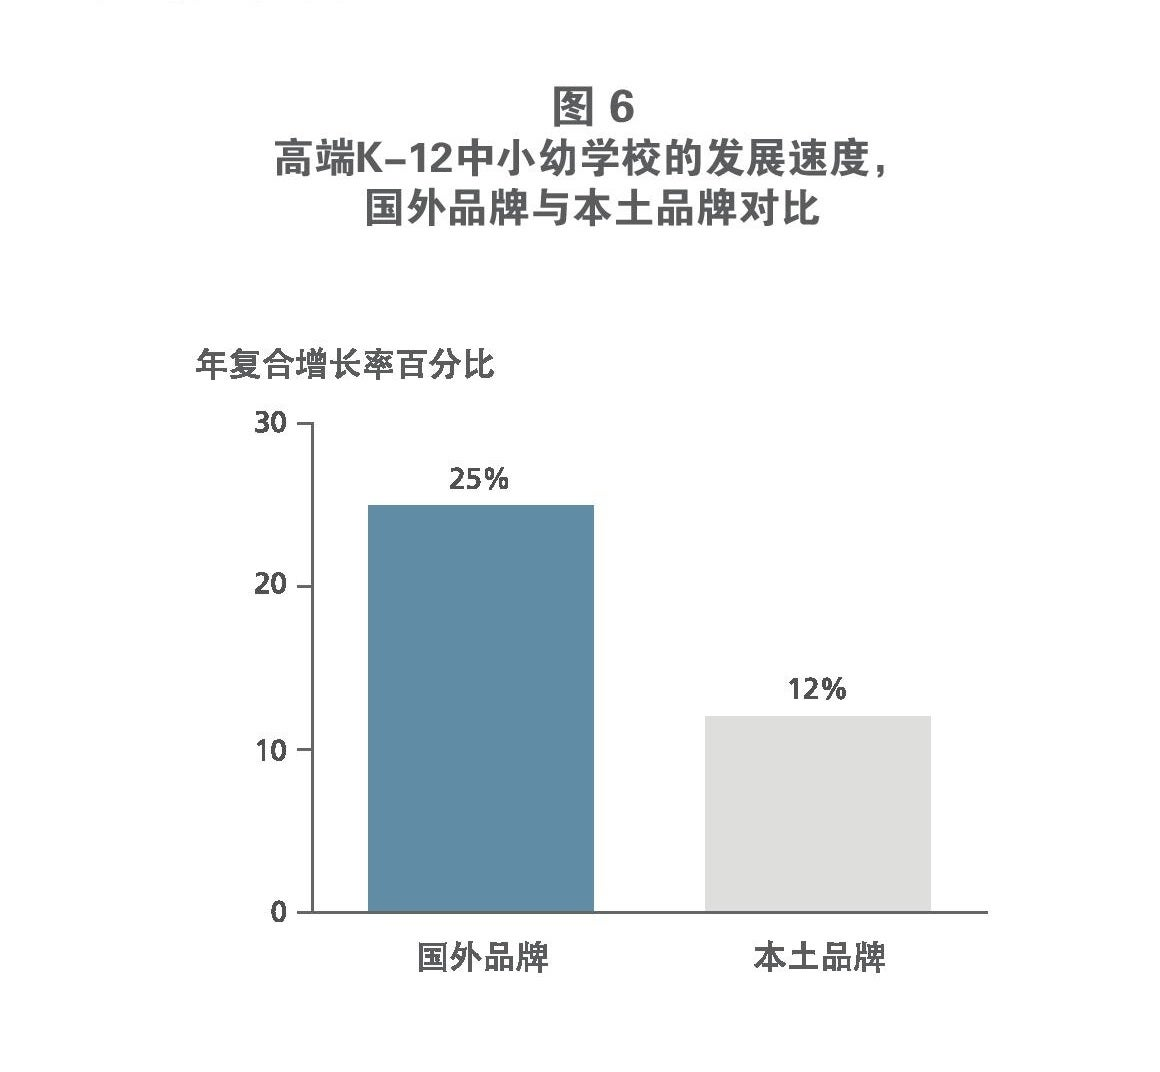 education trends in china figure 6